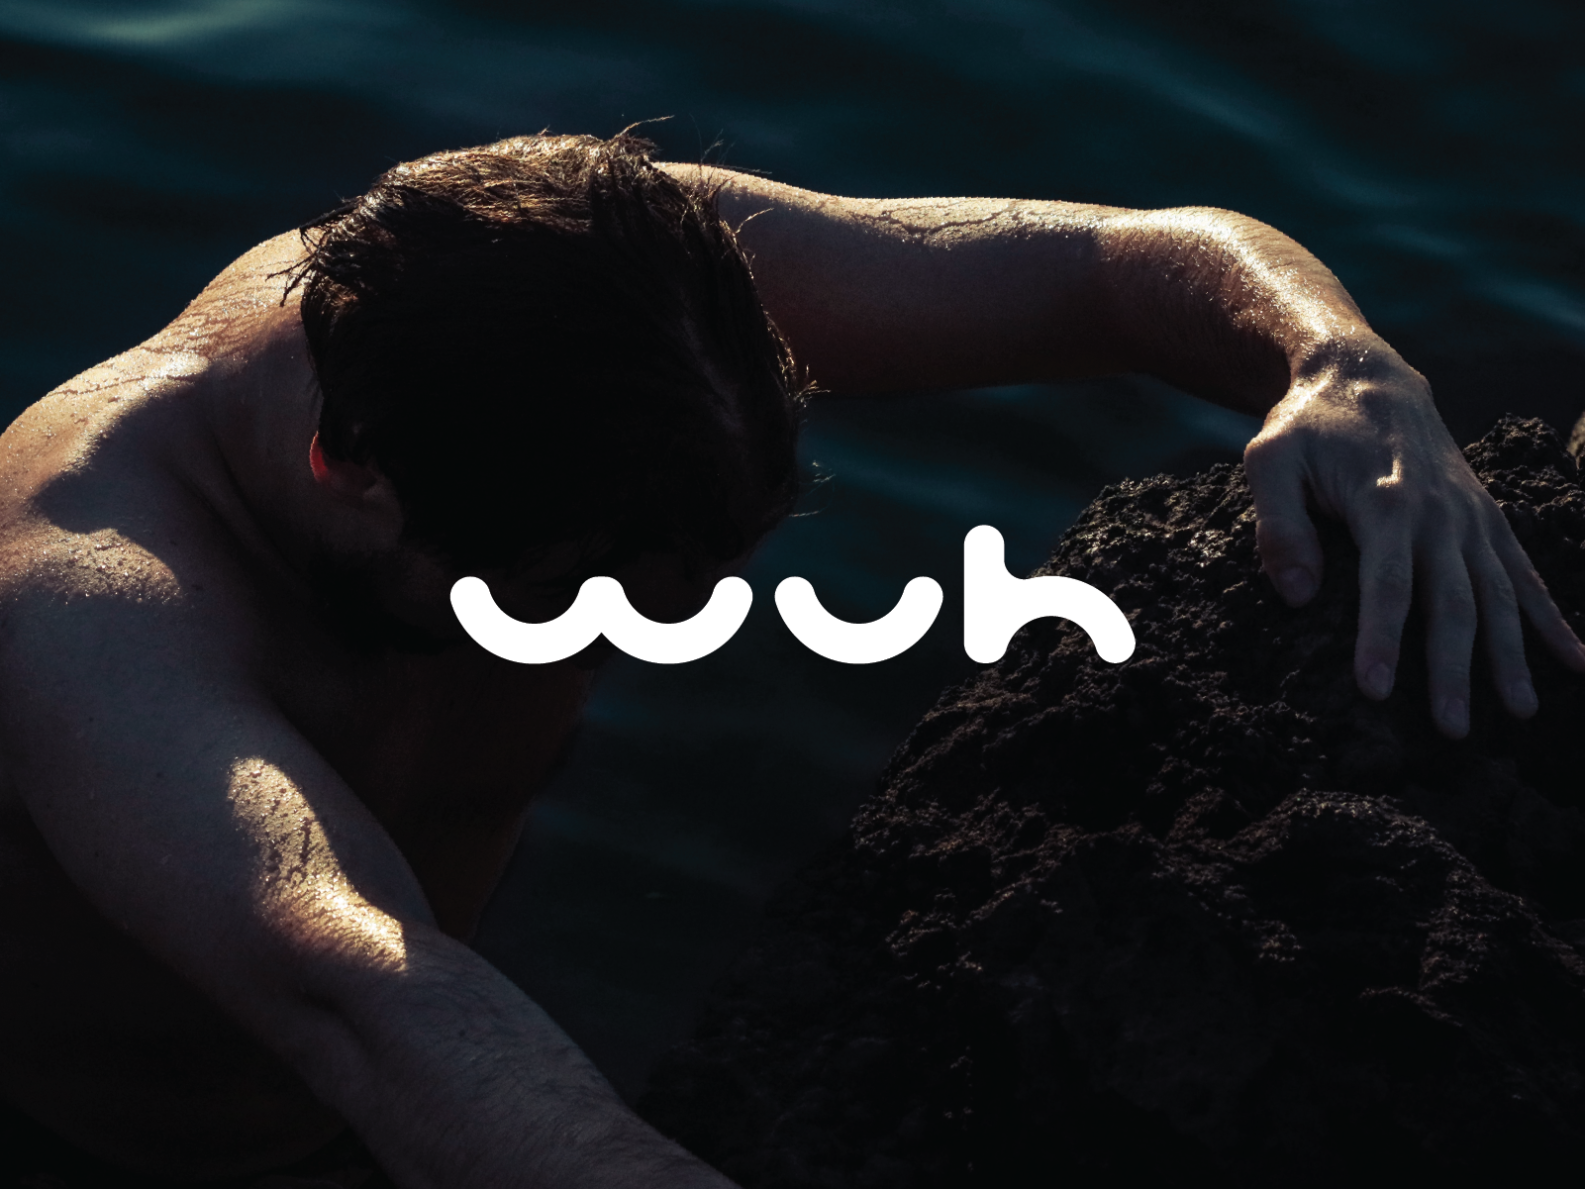 Wuh - Logo experiment